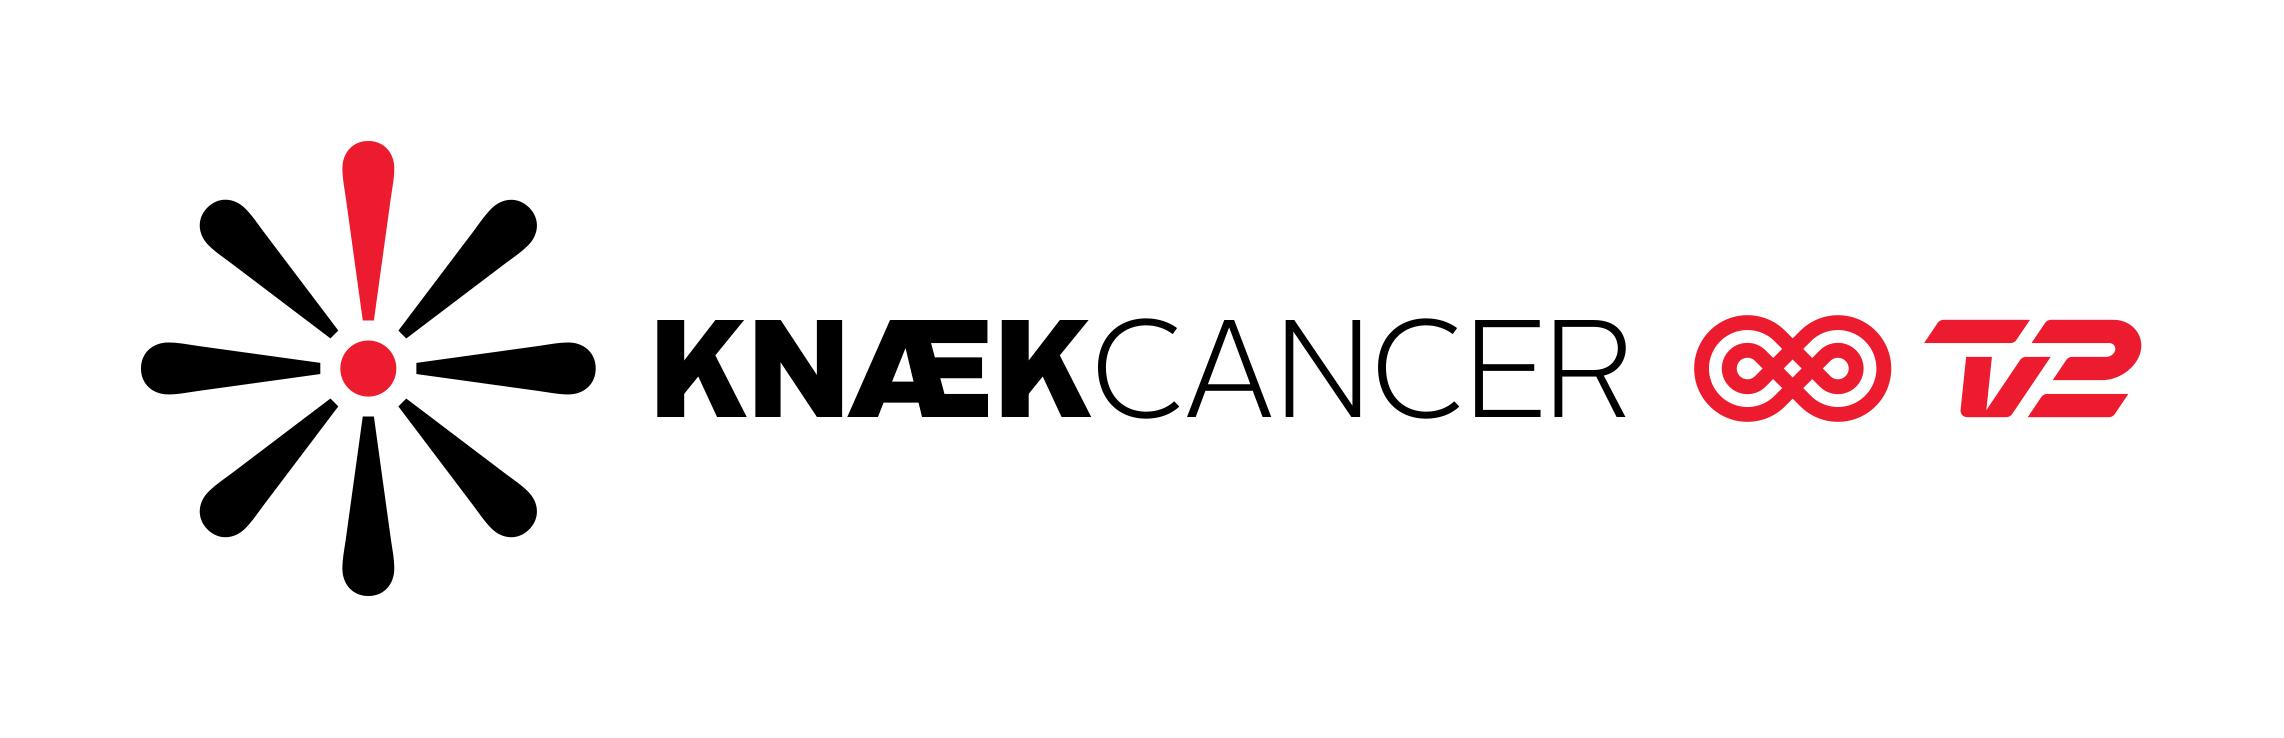 stoet-knaek-cancer